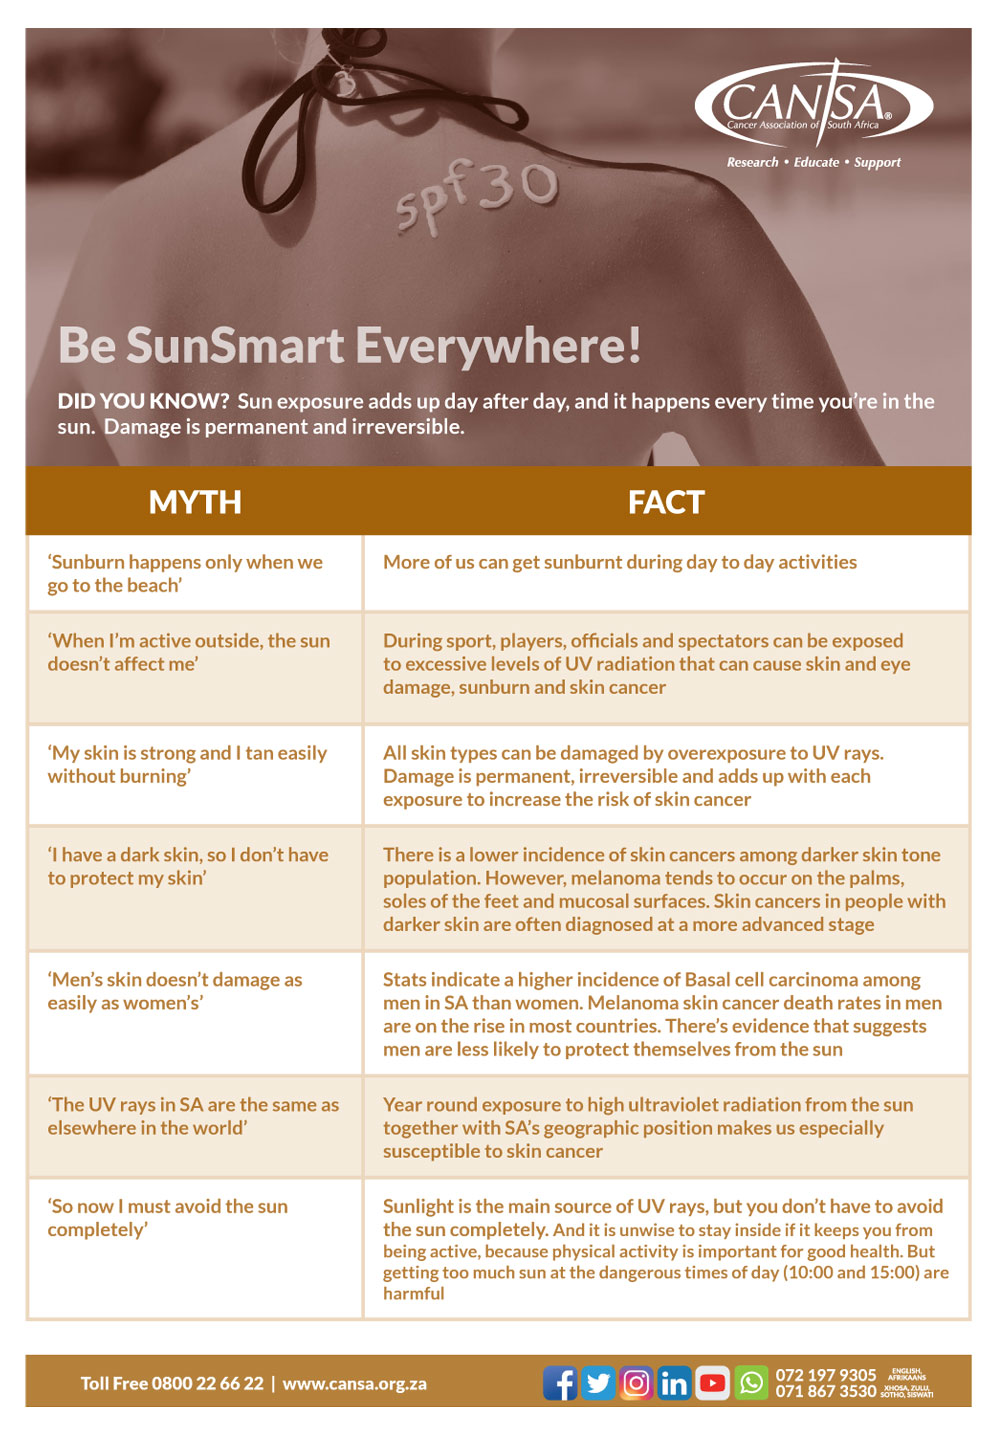 hight resolution of be sunsmart everywhere cansa the cancer association of south africa cansa the cancer association of south africa